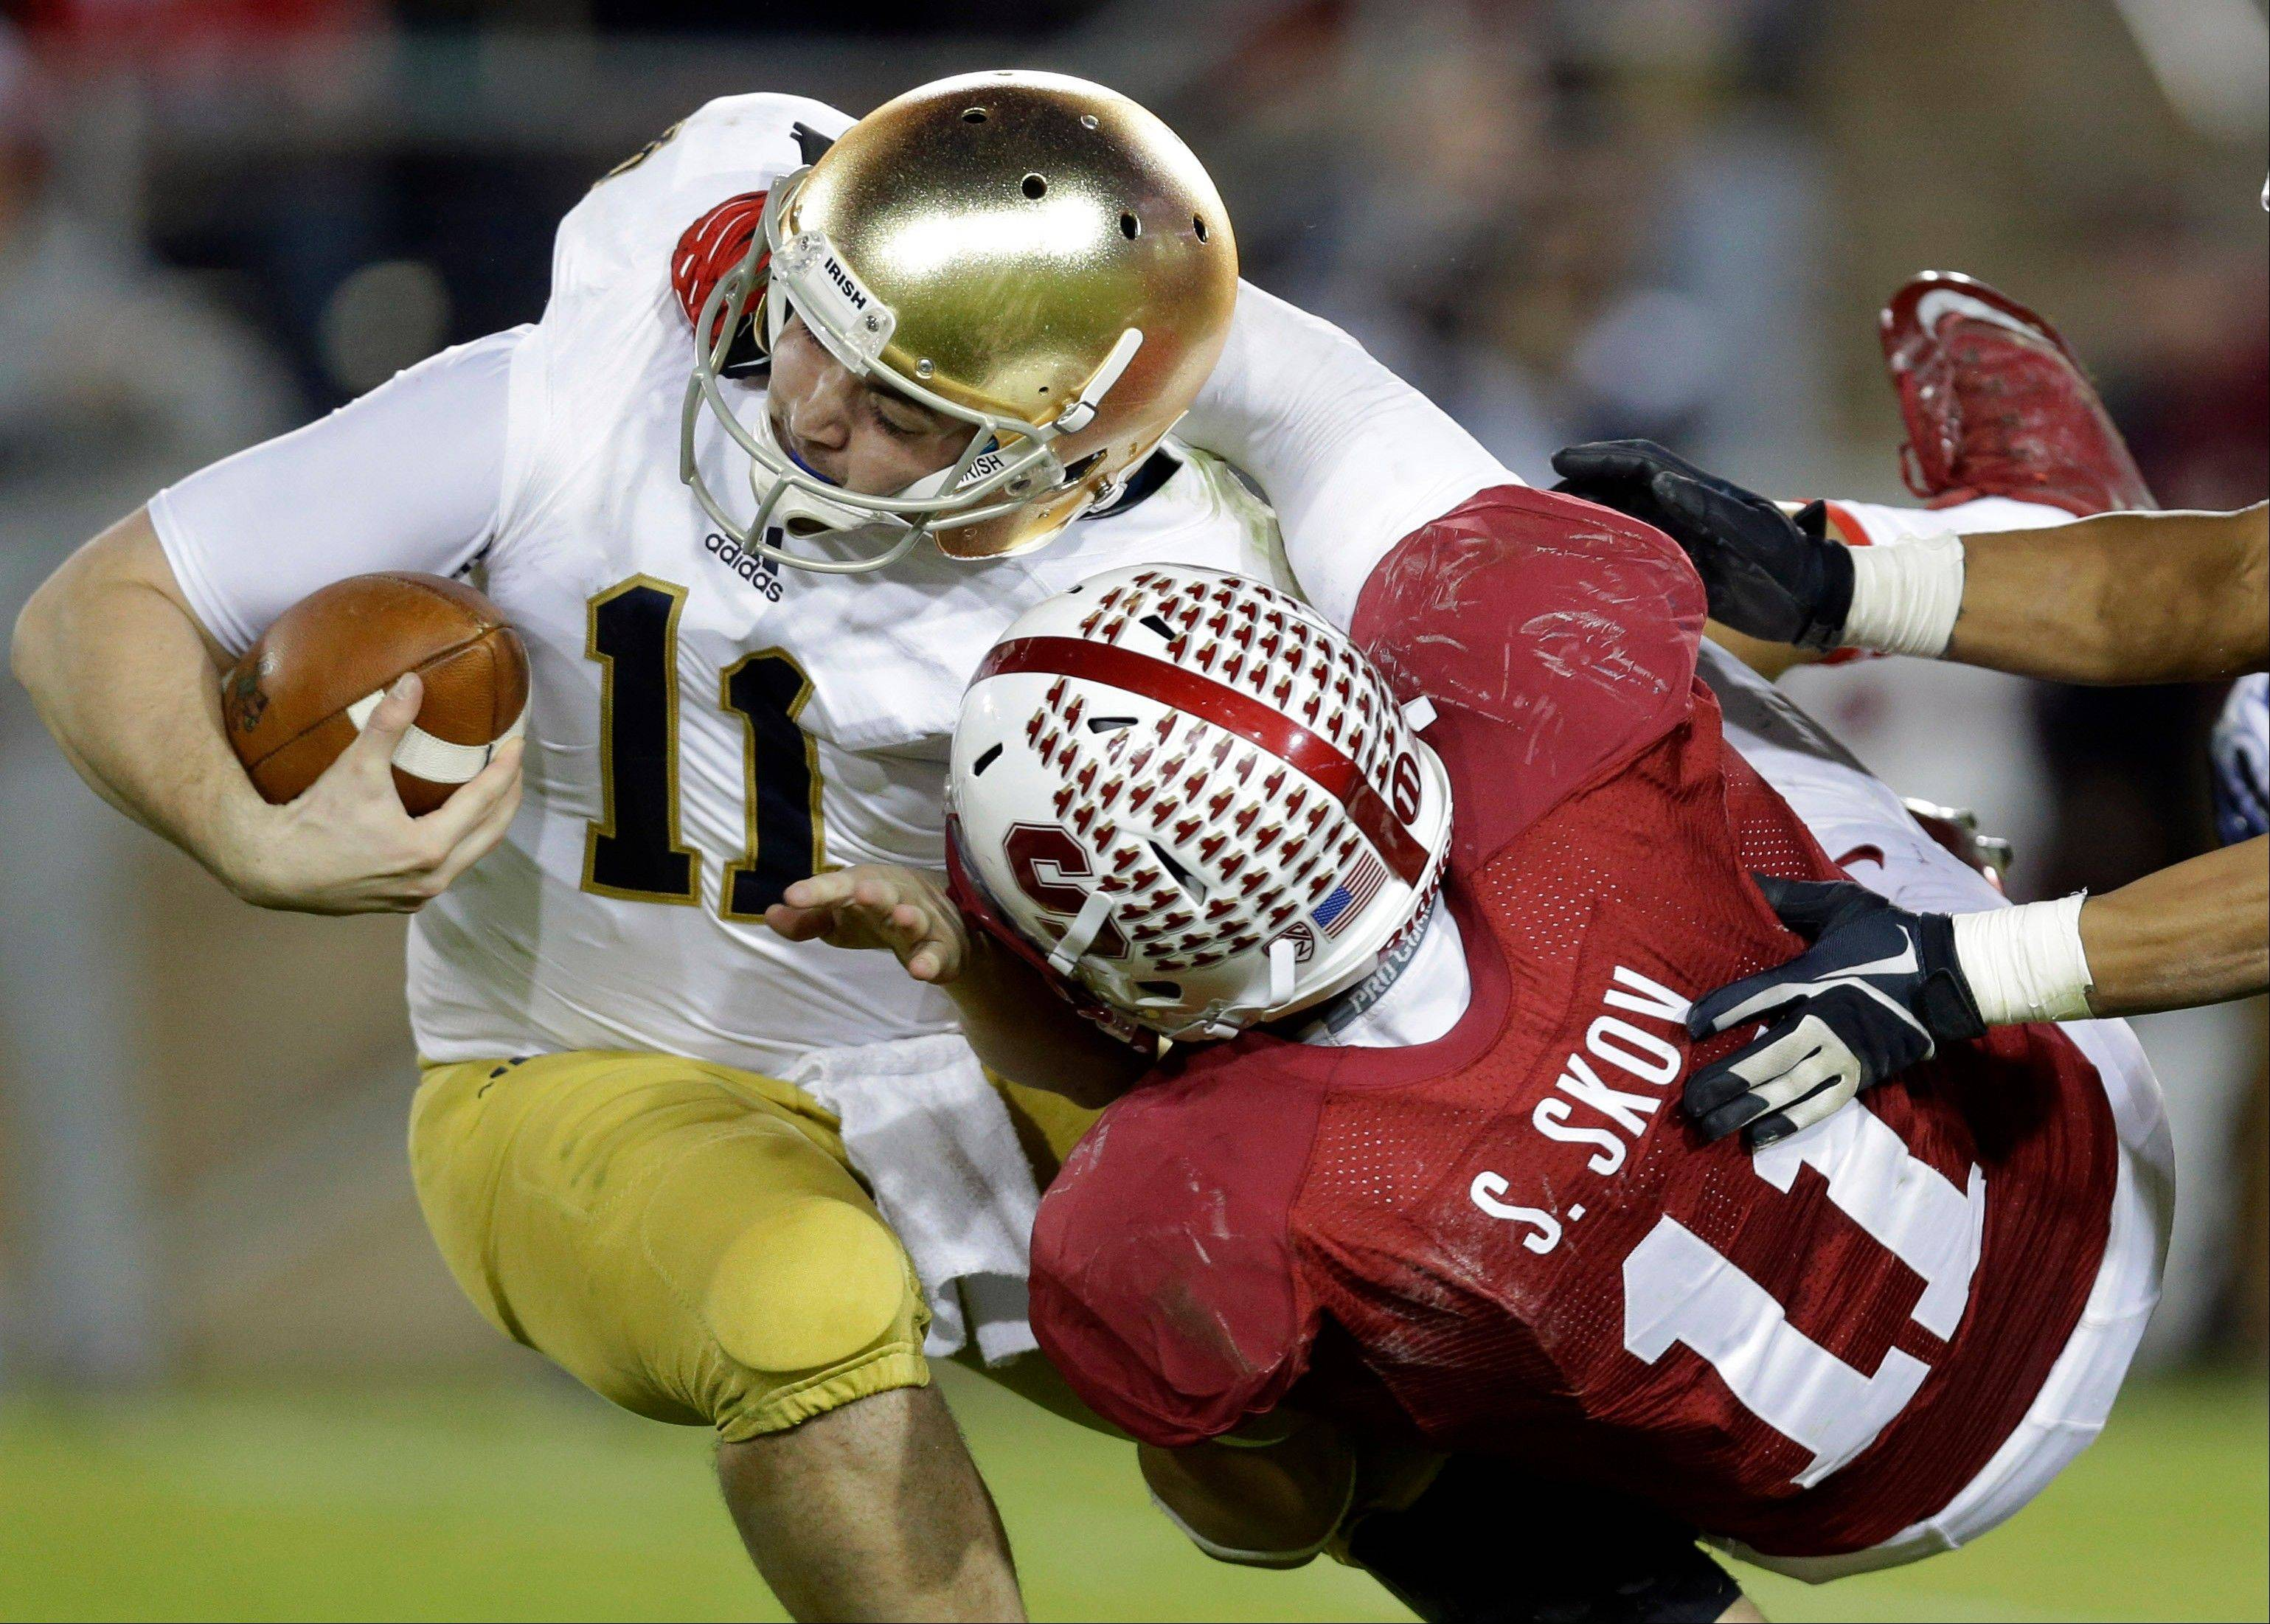 Notre Dame quarterback Tommy Rees, left, is sacked by Stanford linebacker Shayne Skov during the second half of an NCAA college football game on Saturday, Nov. 30, 2013, in Stanford, Calif. Stanford won 27-20.